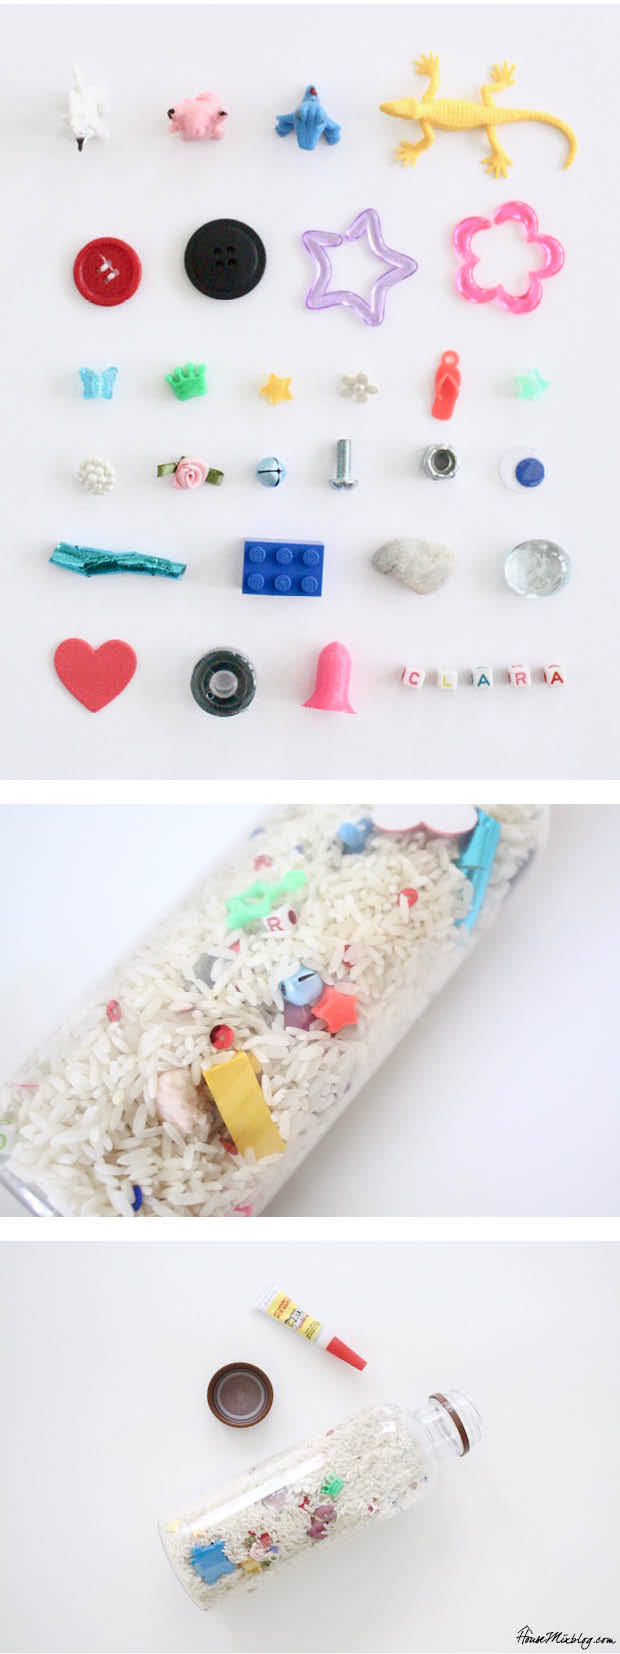 DIY find it bottle with rice and trinkets to keep kids occupied during travel or even in the waiting room